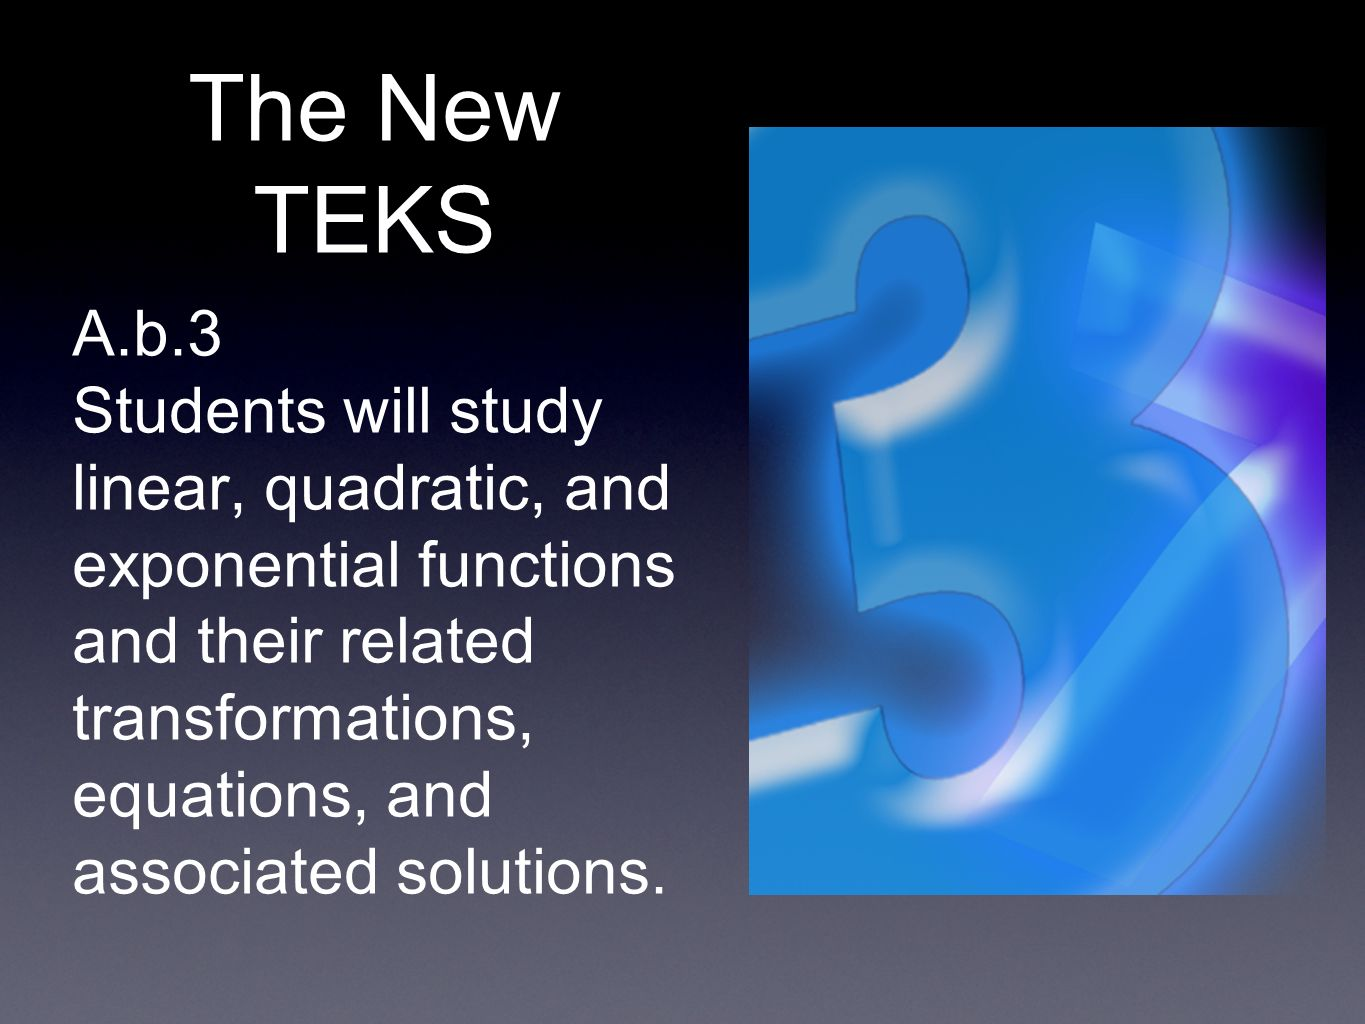 The New TEKS A.b.3 Students will study linear, quadratic, and exponential functions and their related transformations, equations, and associated solut